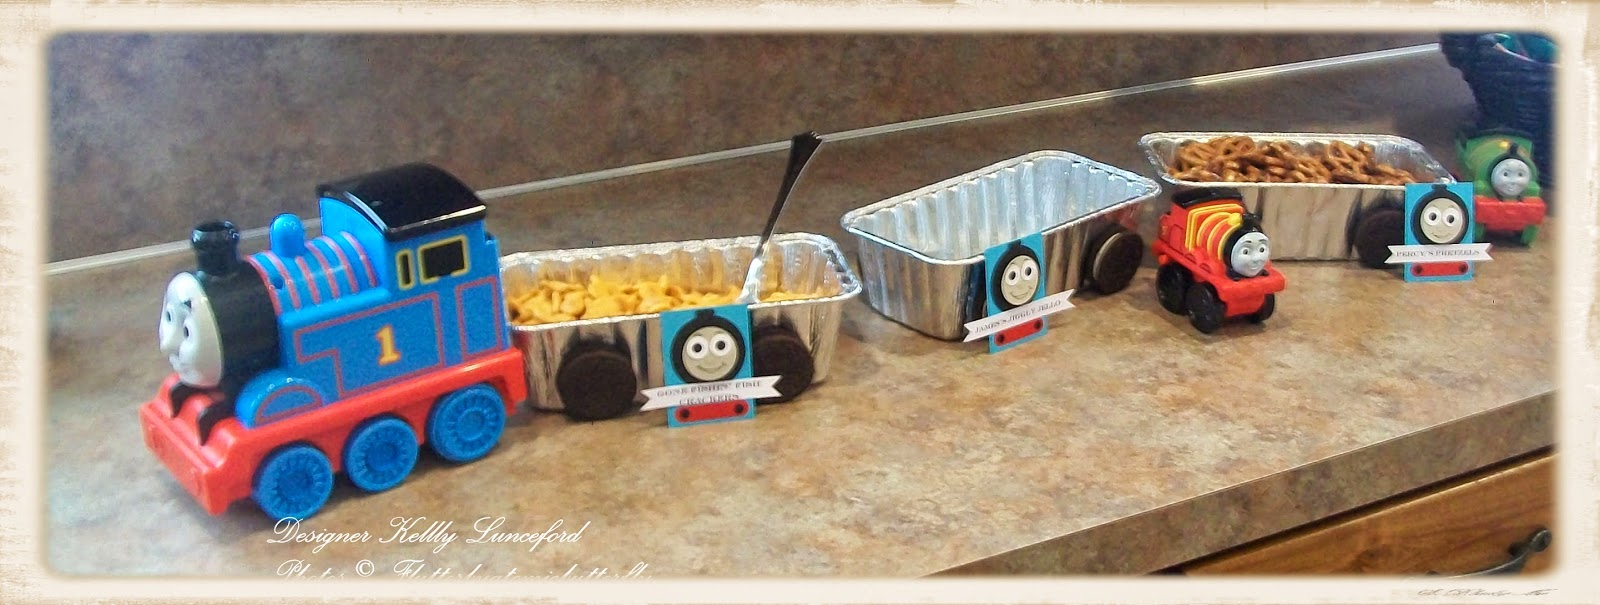 Again I hadnu0027t put all of the food out but I had to recreate this fun way to display food that I saw. There are so many resources for fun ideas ...  sc 1 st  Kelly Lunceford & Flutter by Atomicbutterfly: Thomas the Tank Engine 5th Birthday Party